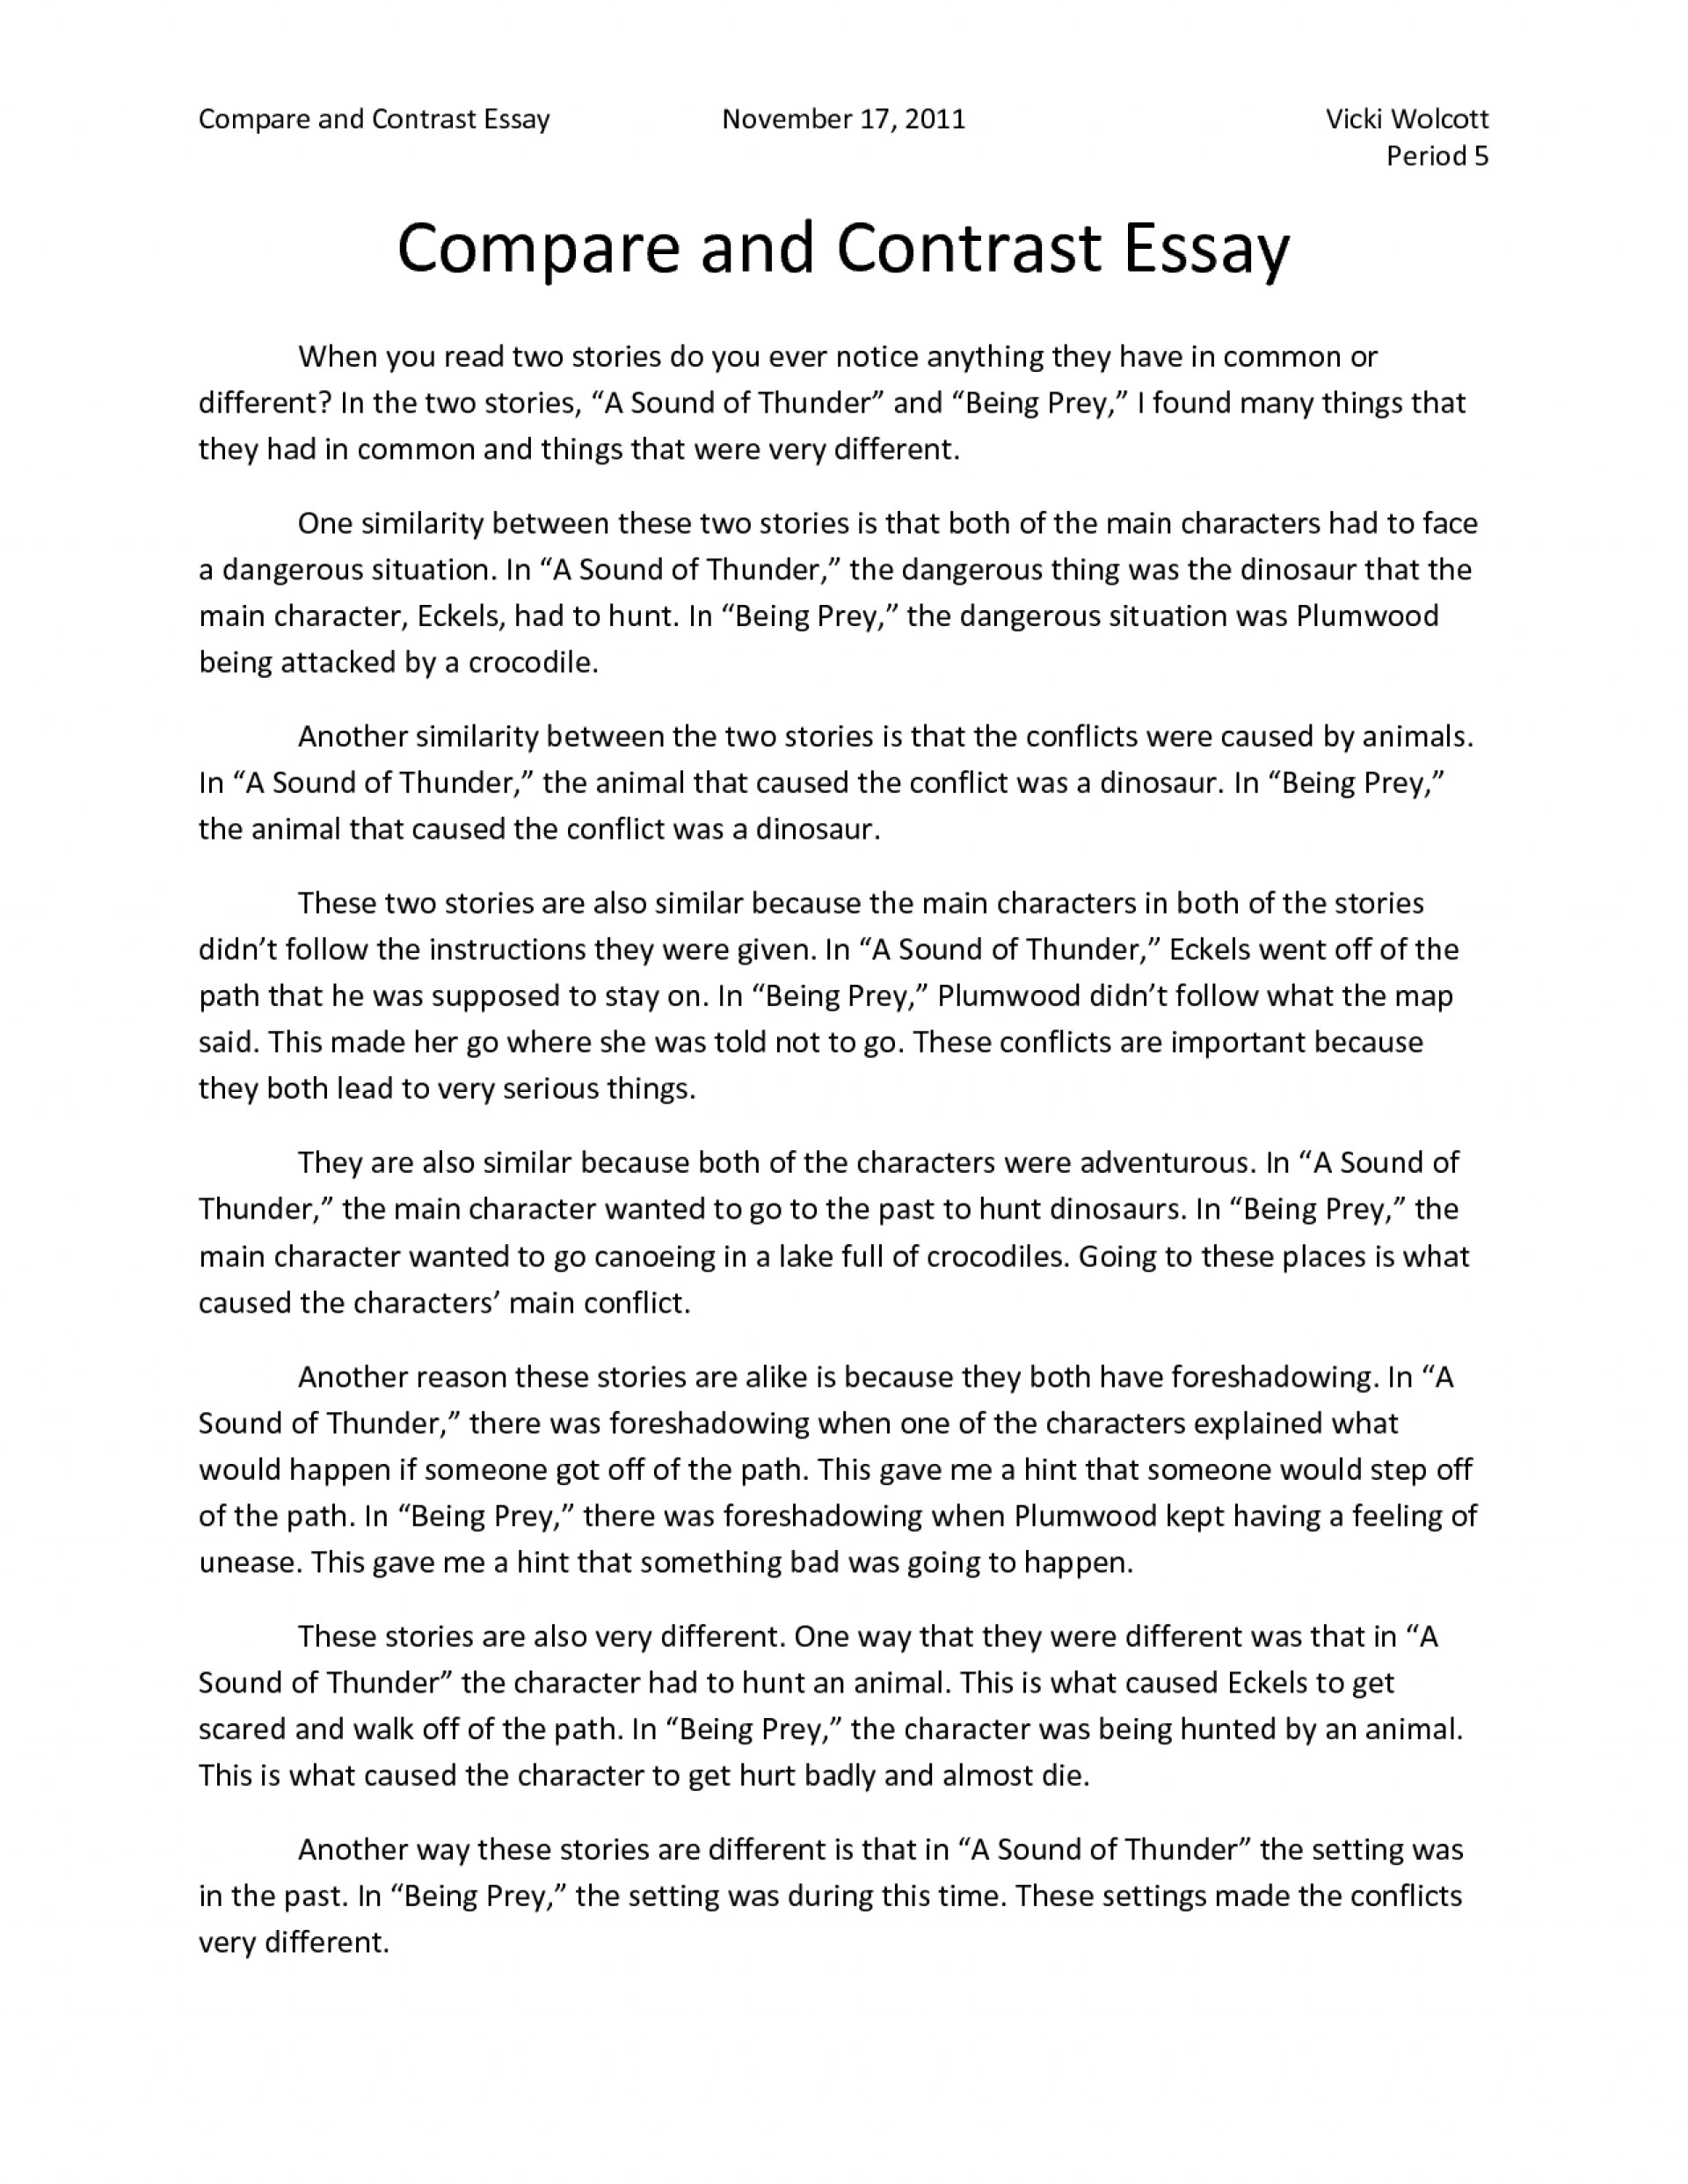 003 Perfect Essays Compare And Contrast Essay Introduction Example How To Write College Striking Examples For Students Topics 7th Grade 1920